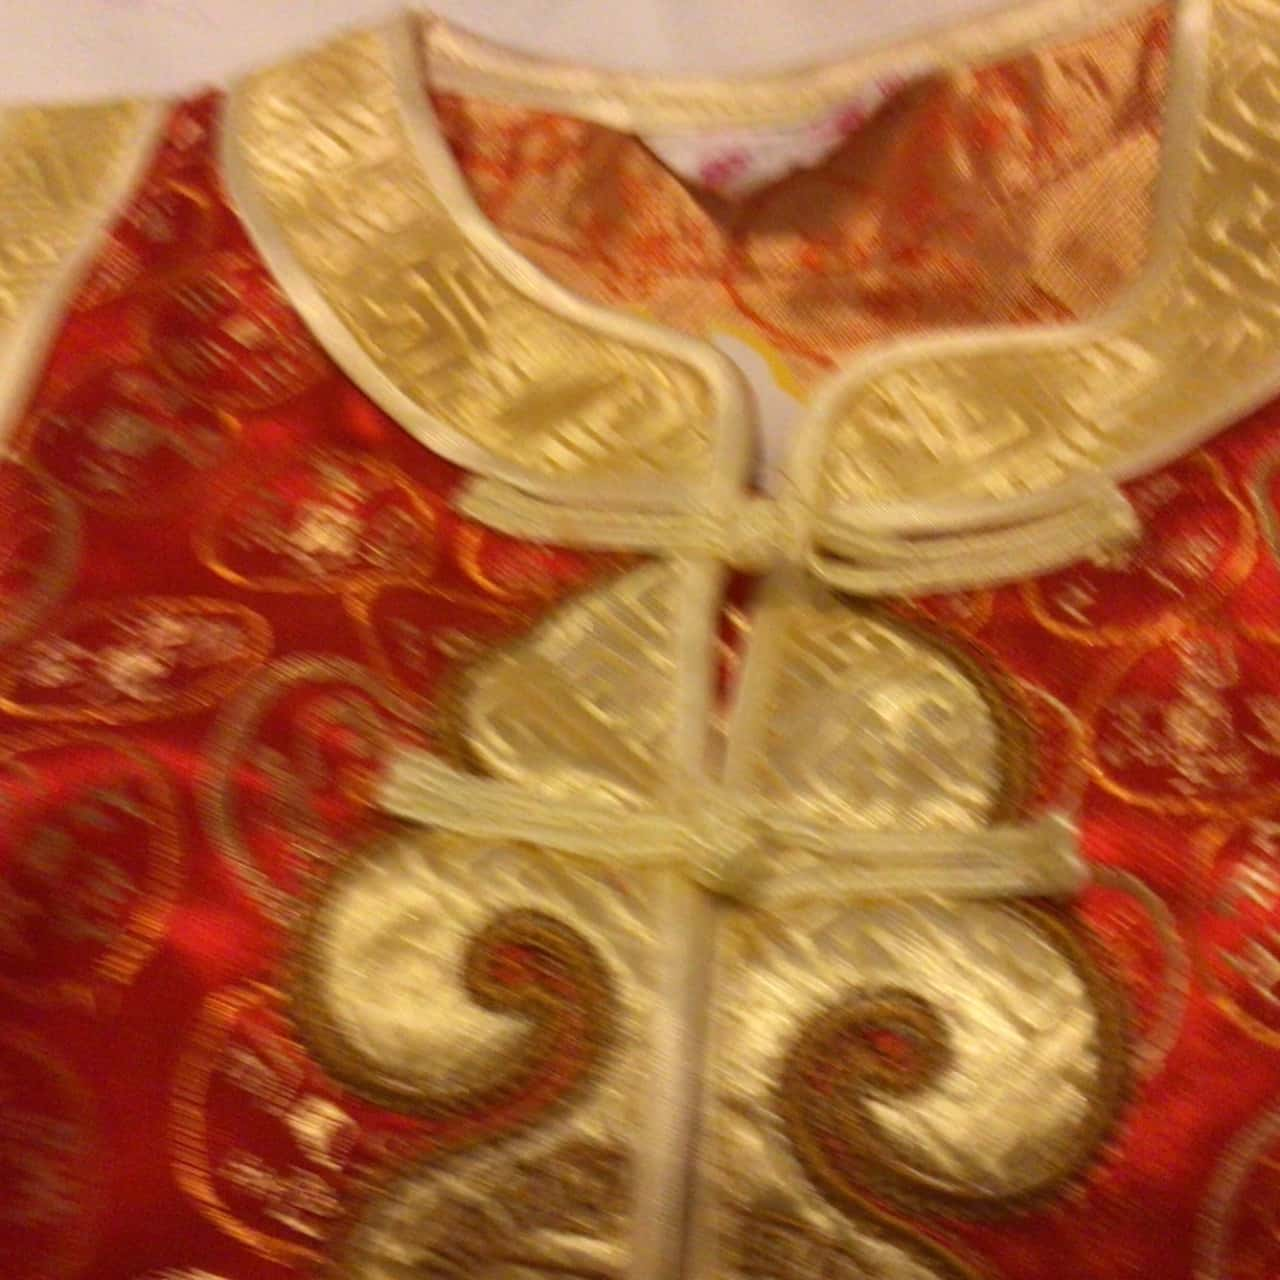 BNWT Kids  Size S Gold/Red Little Emperor Asian Style Top and Pants RRP $39.95